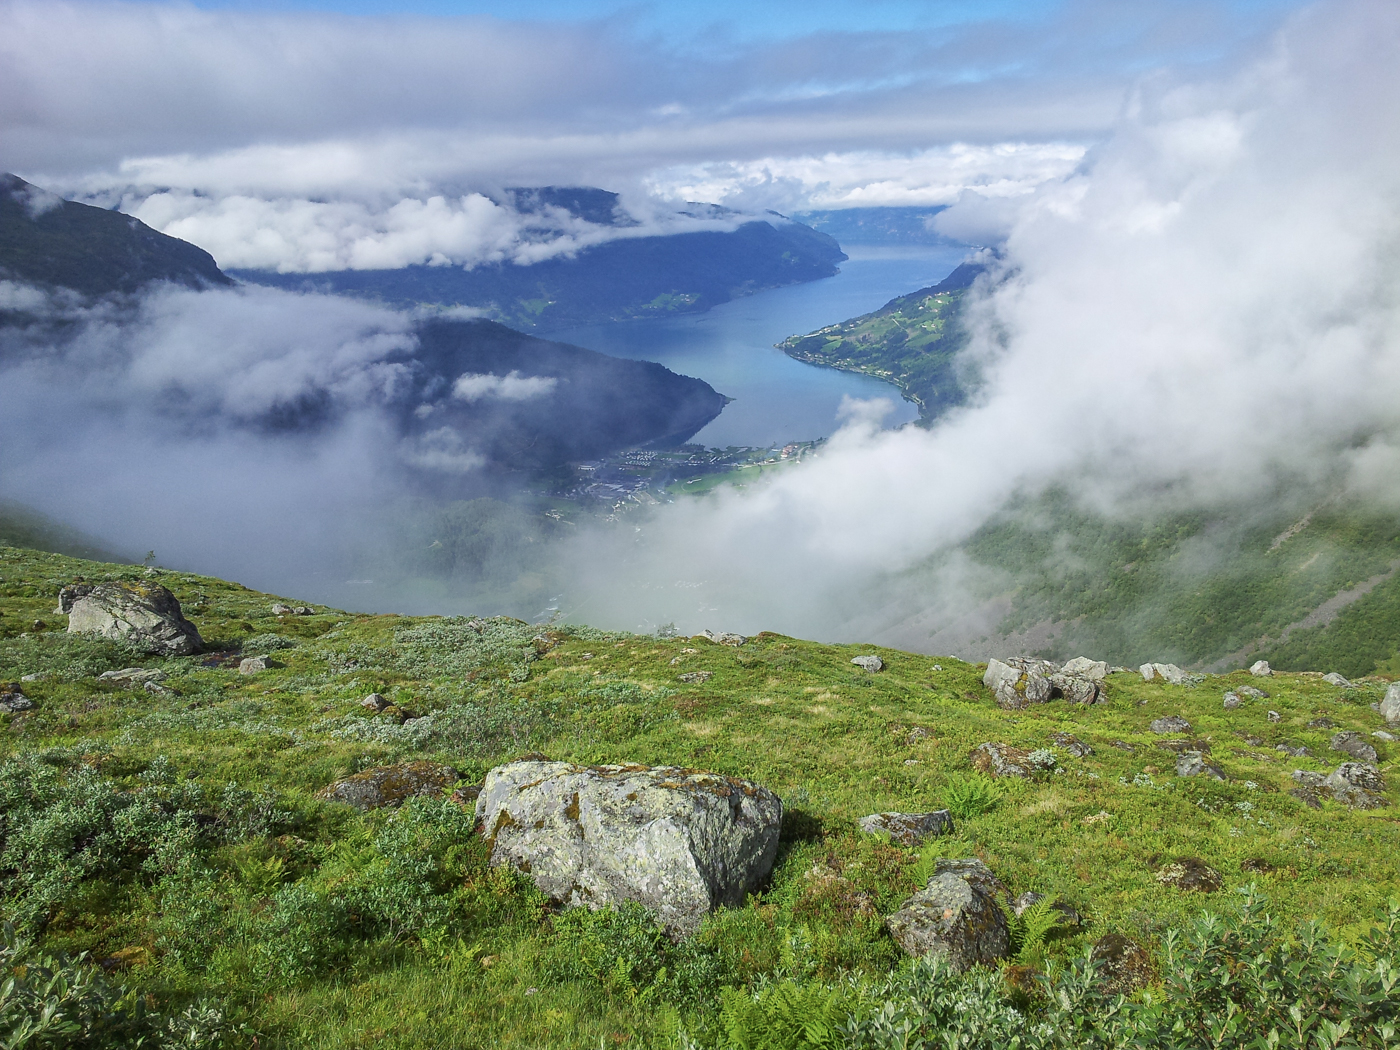 Explore Nordfjord and sail with us in the amazing fjords of Norway